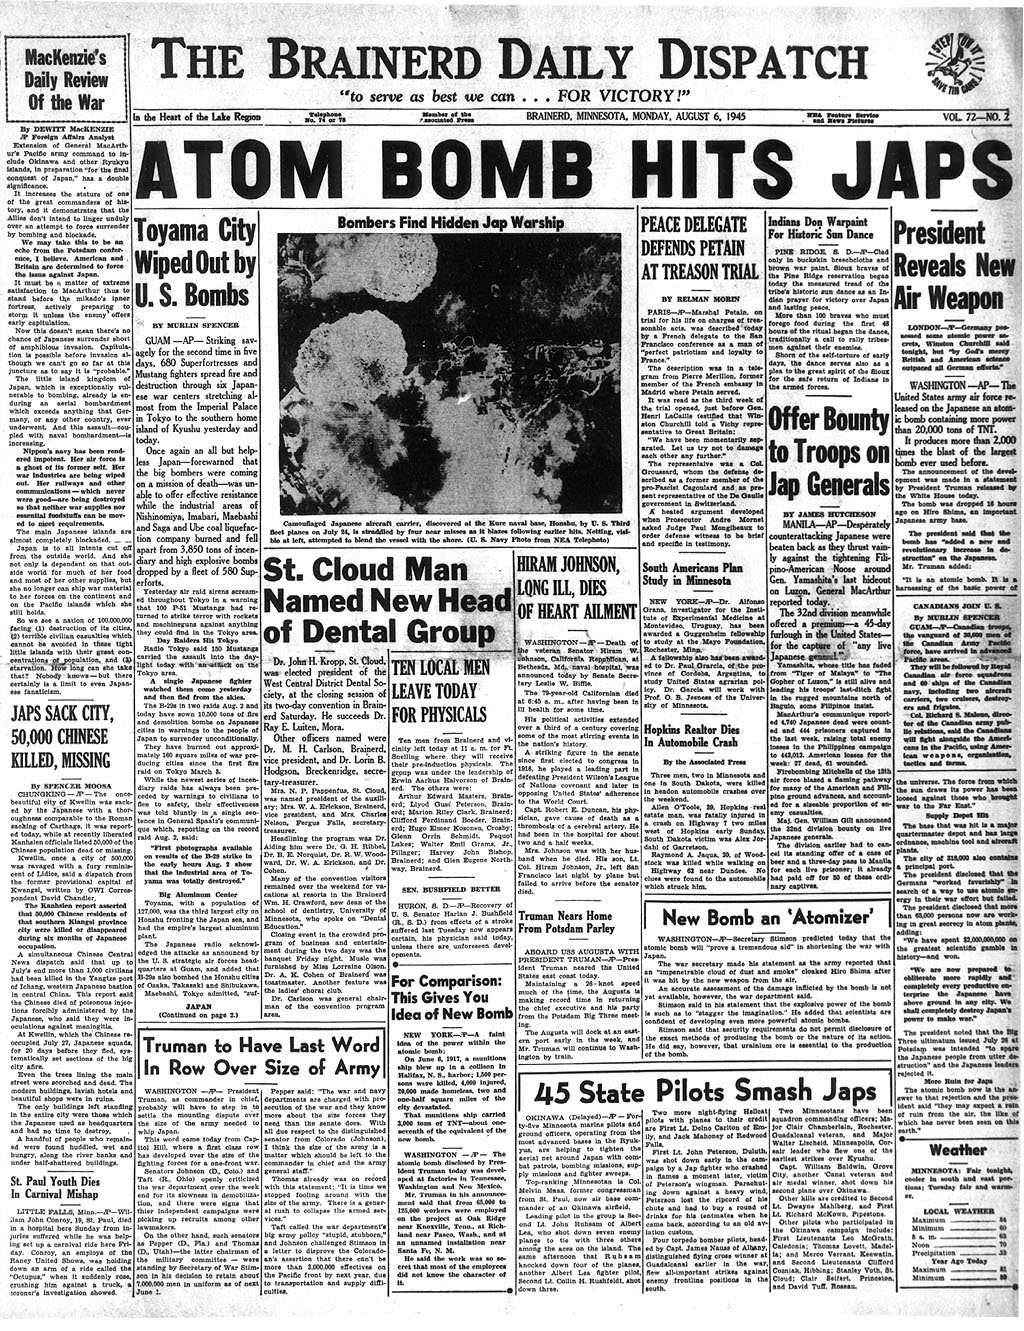 atomic bomb on hiroshima essay On 6 august 1945, the first atomic bomb to be dropped on foreign soil was released from enola gay on hiroshima, japan this nuclear bomb, named.